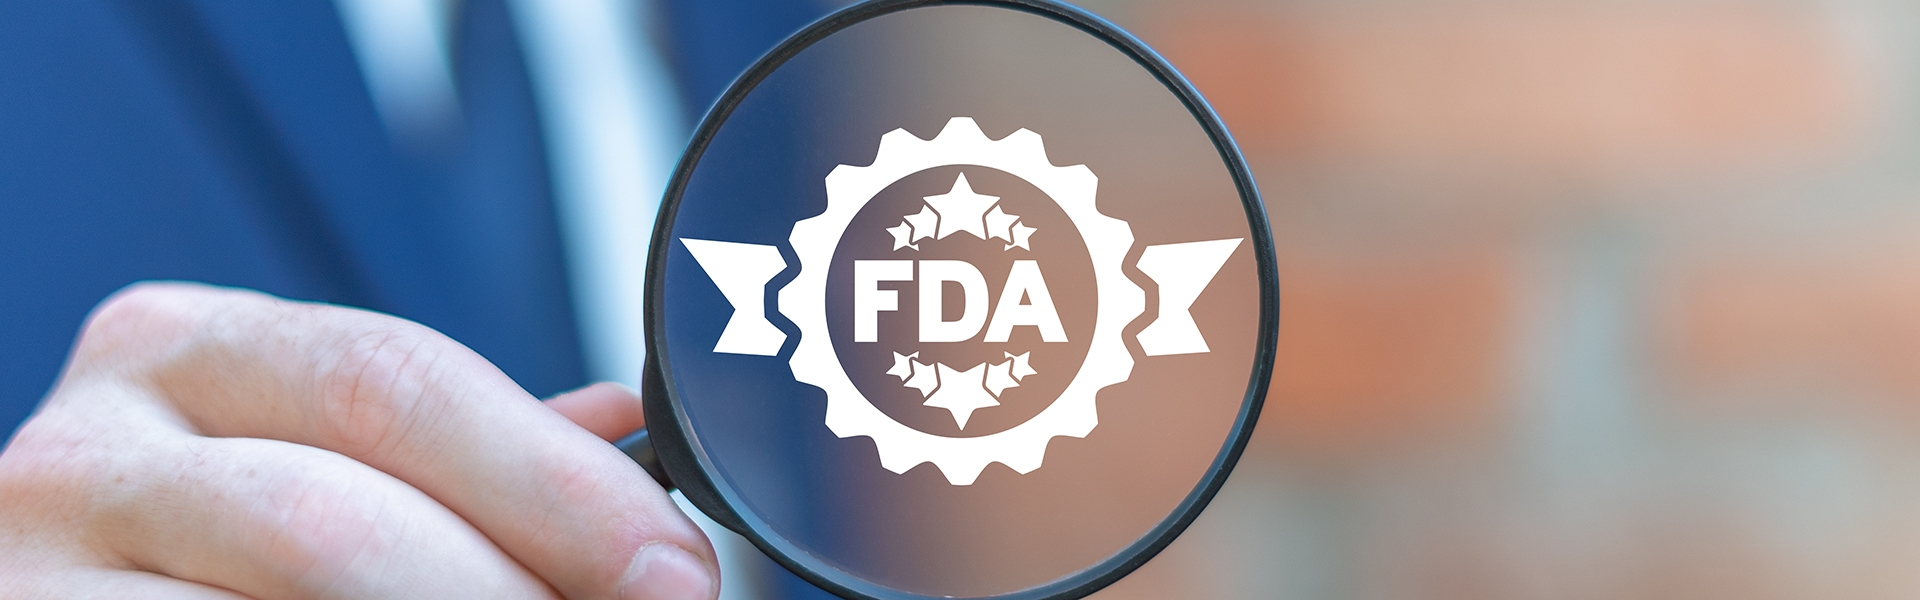 FDA Released Proposed Rule for Over-the-Counter Hearing Aids and New Draft Guidance for Personal Sound Amplification Products